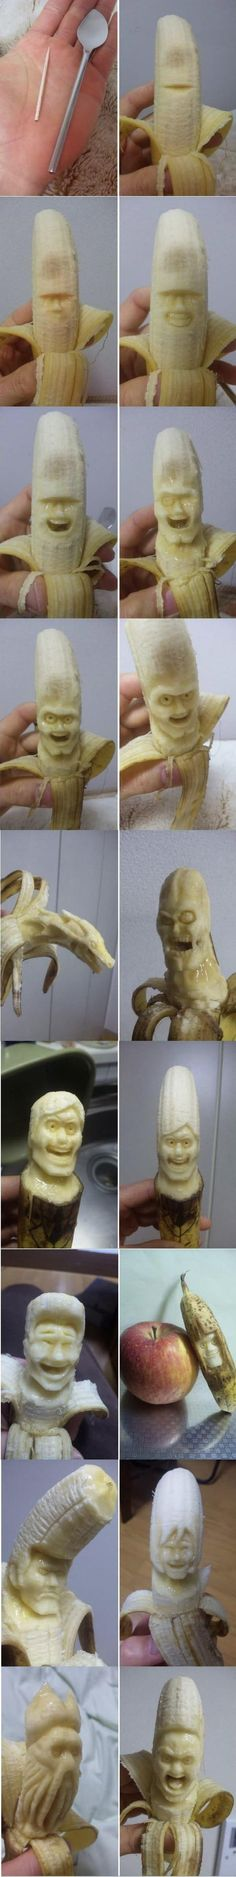 spoon + toothpick + banana = art?